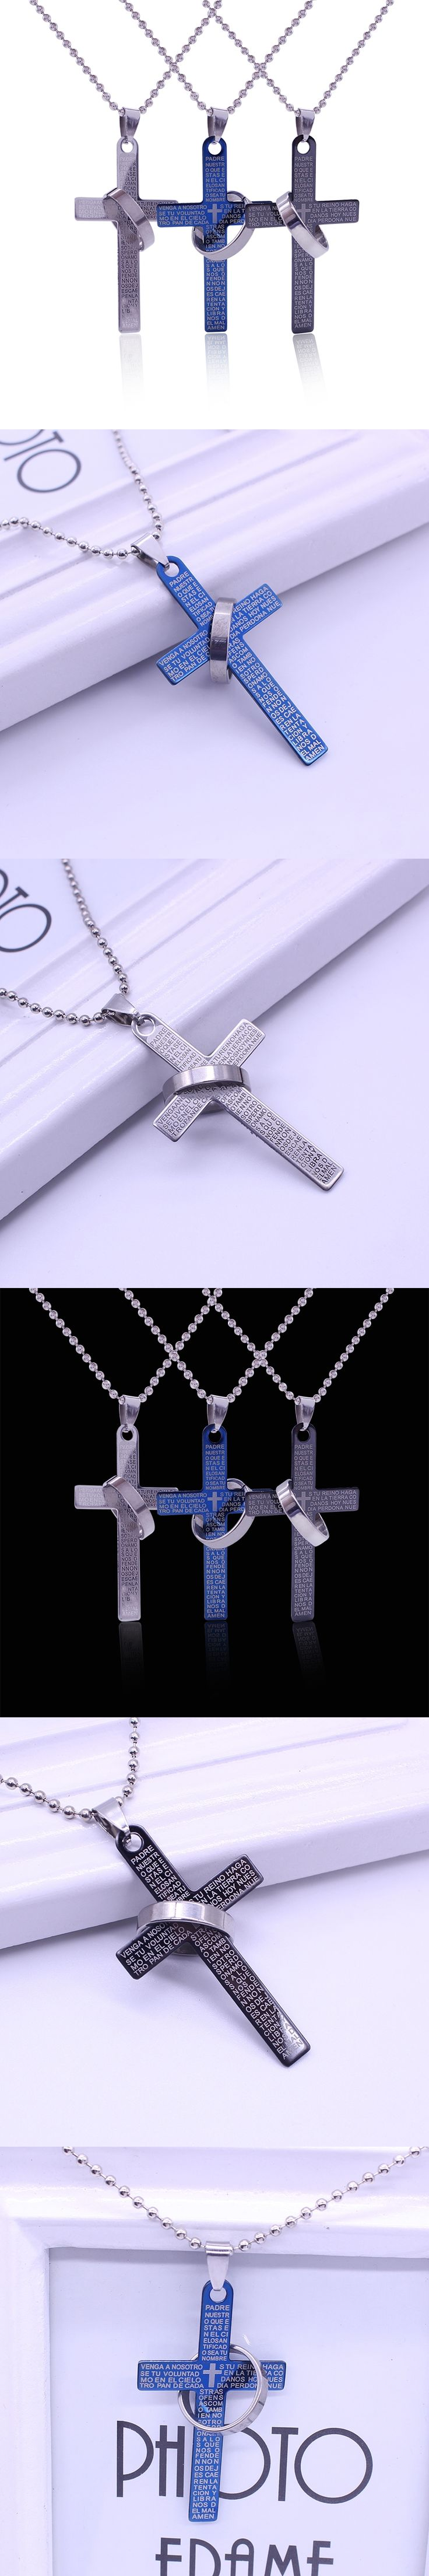 Christian necklaces for couples dating